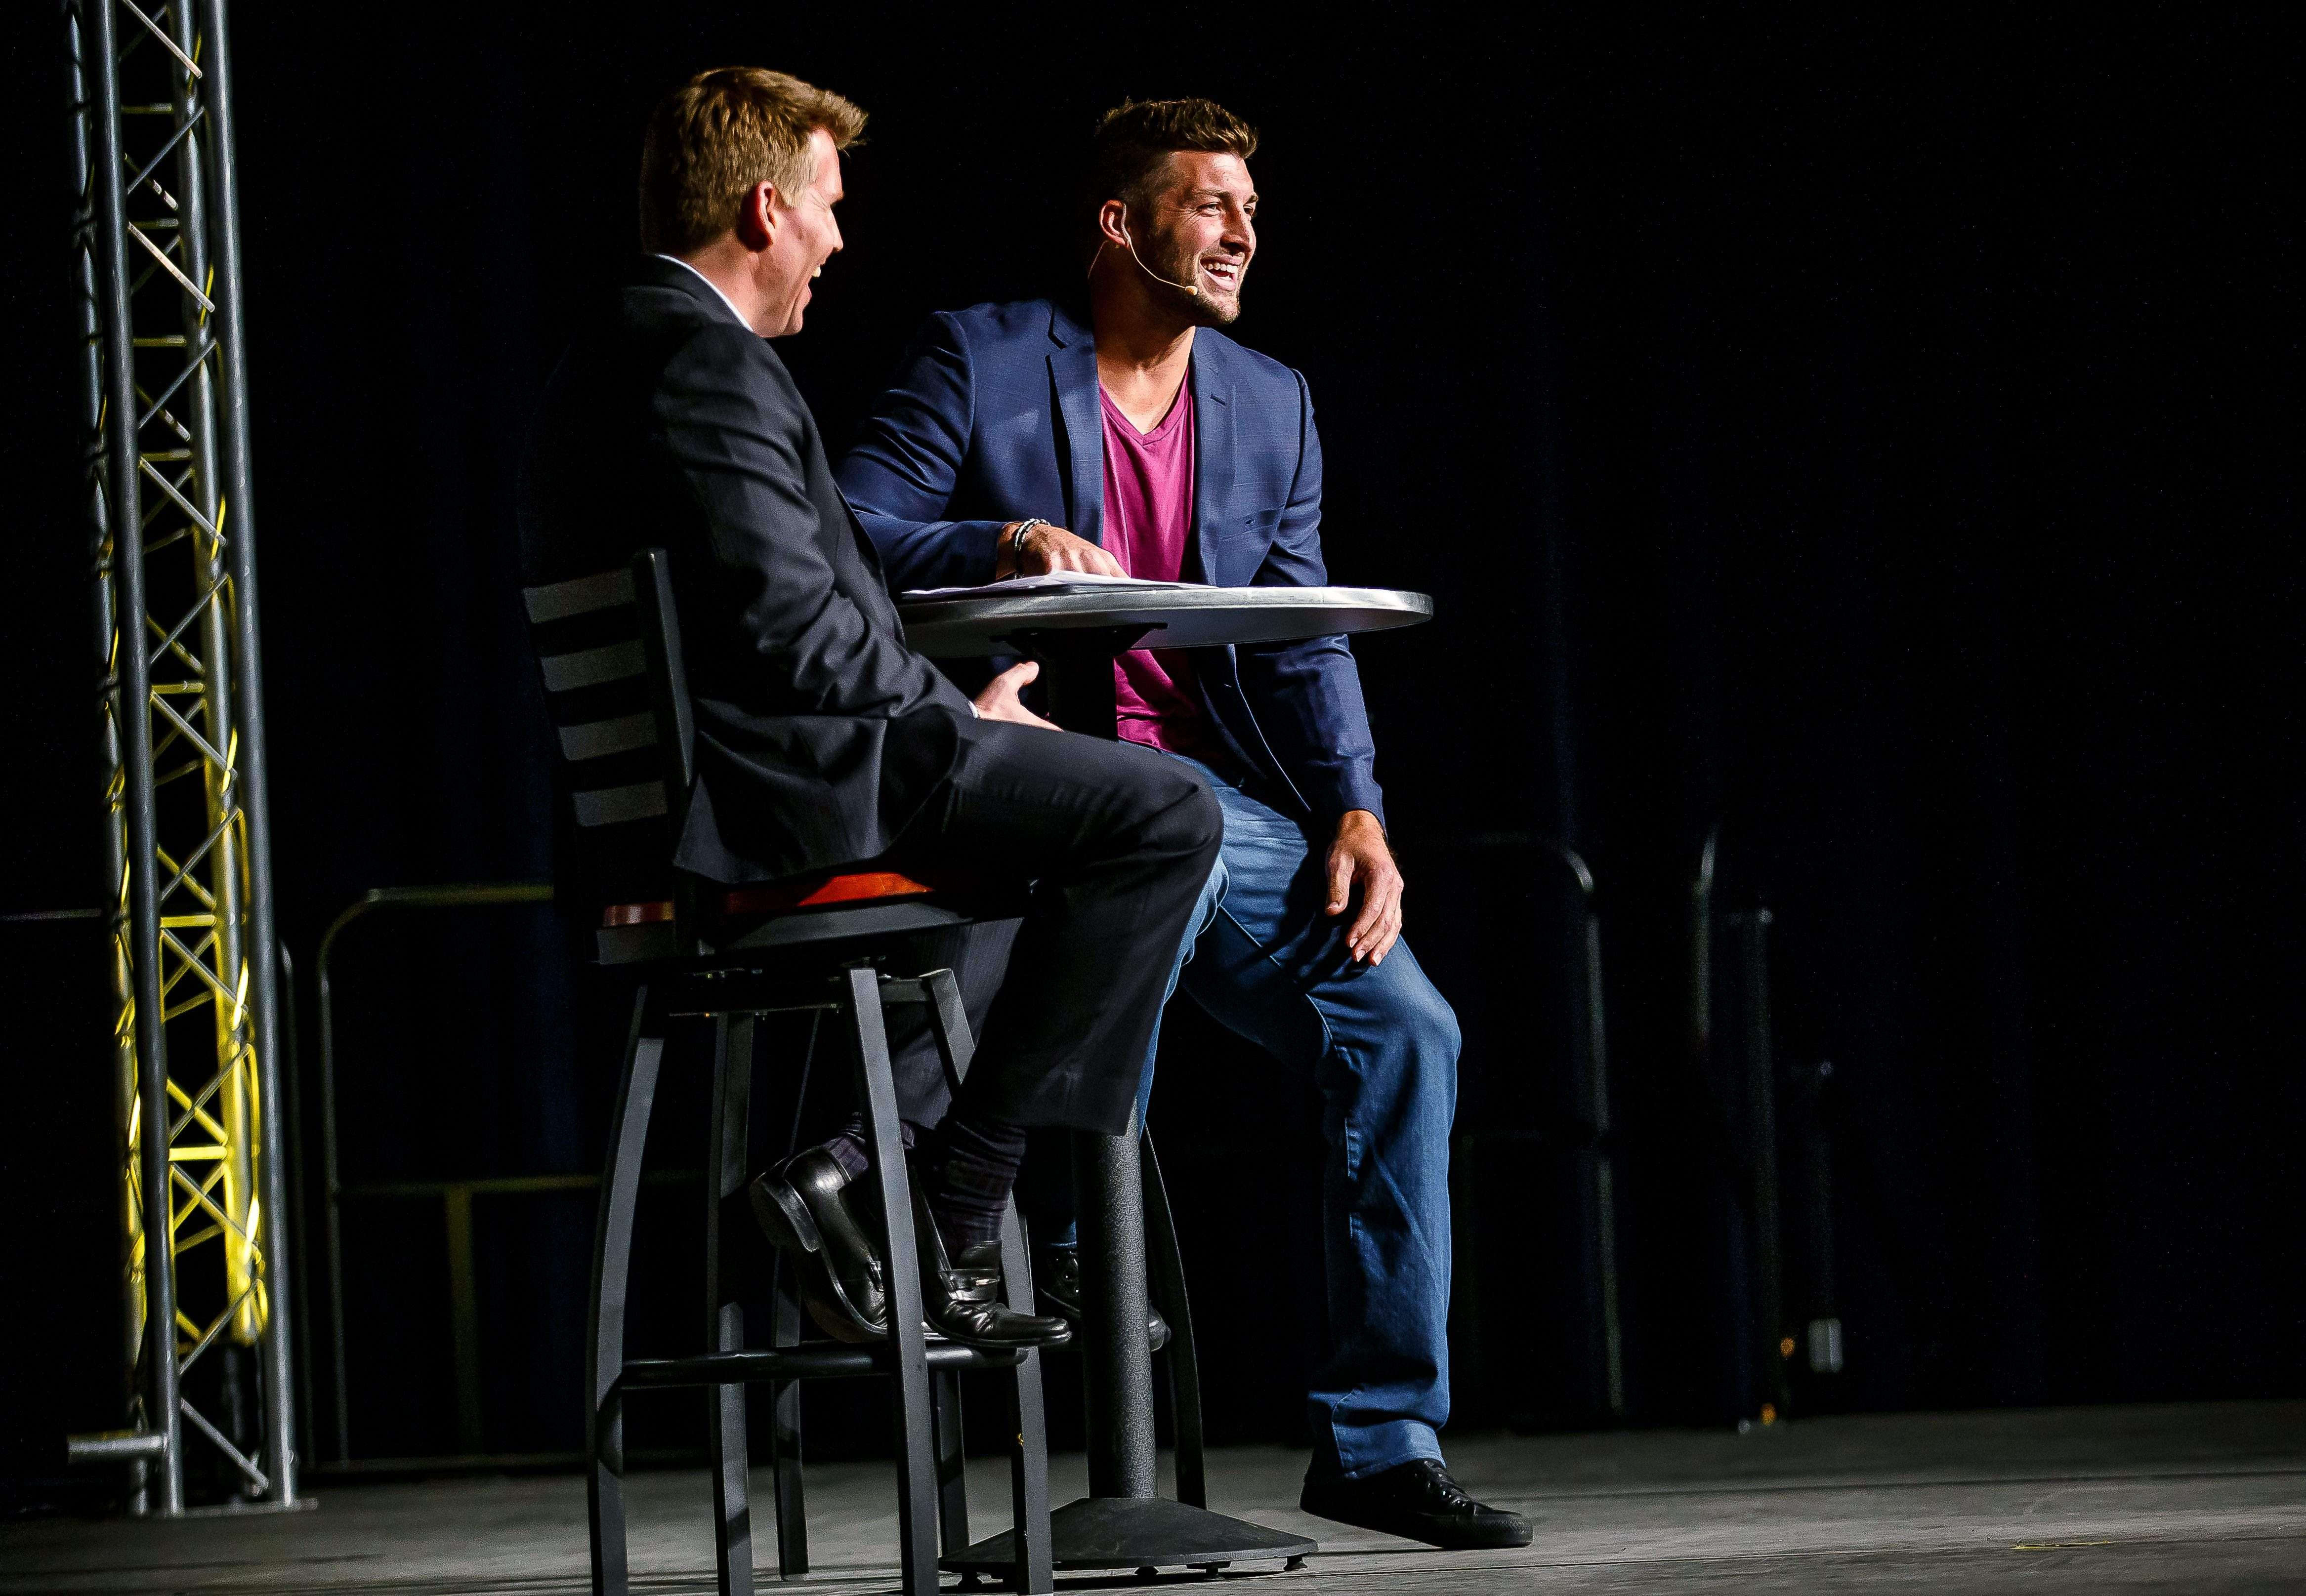 NFL Network RedZone Host Scott Hanson, left, talks with Tim Tebow, right, on stage during the Central Illinois 2014 FCA Home Team Banquet at the Prairie Capital Convention Center, Sunday, May 4, 2014, in Springfield, Ill. Justin L. Fowler/The State Journal-Register